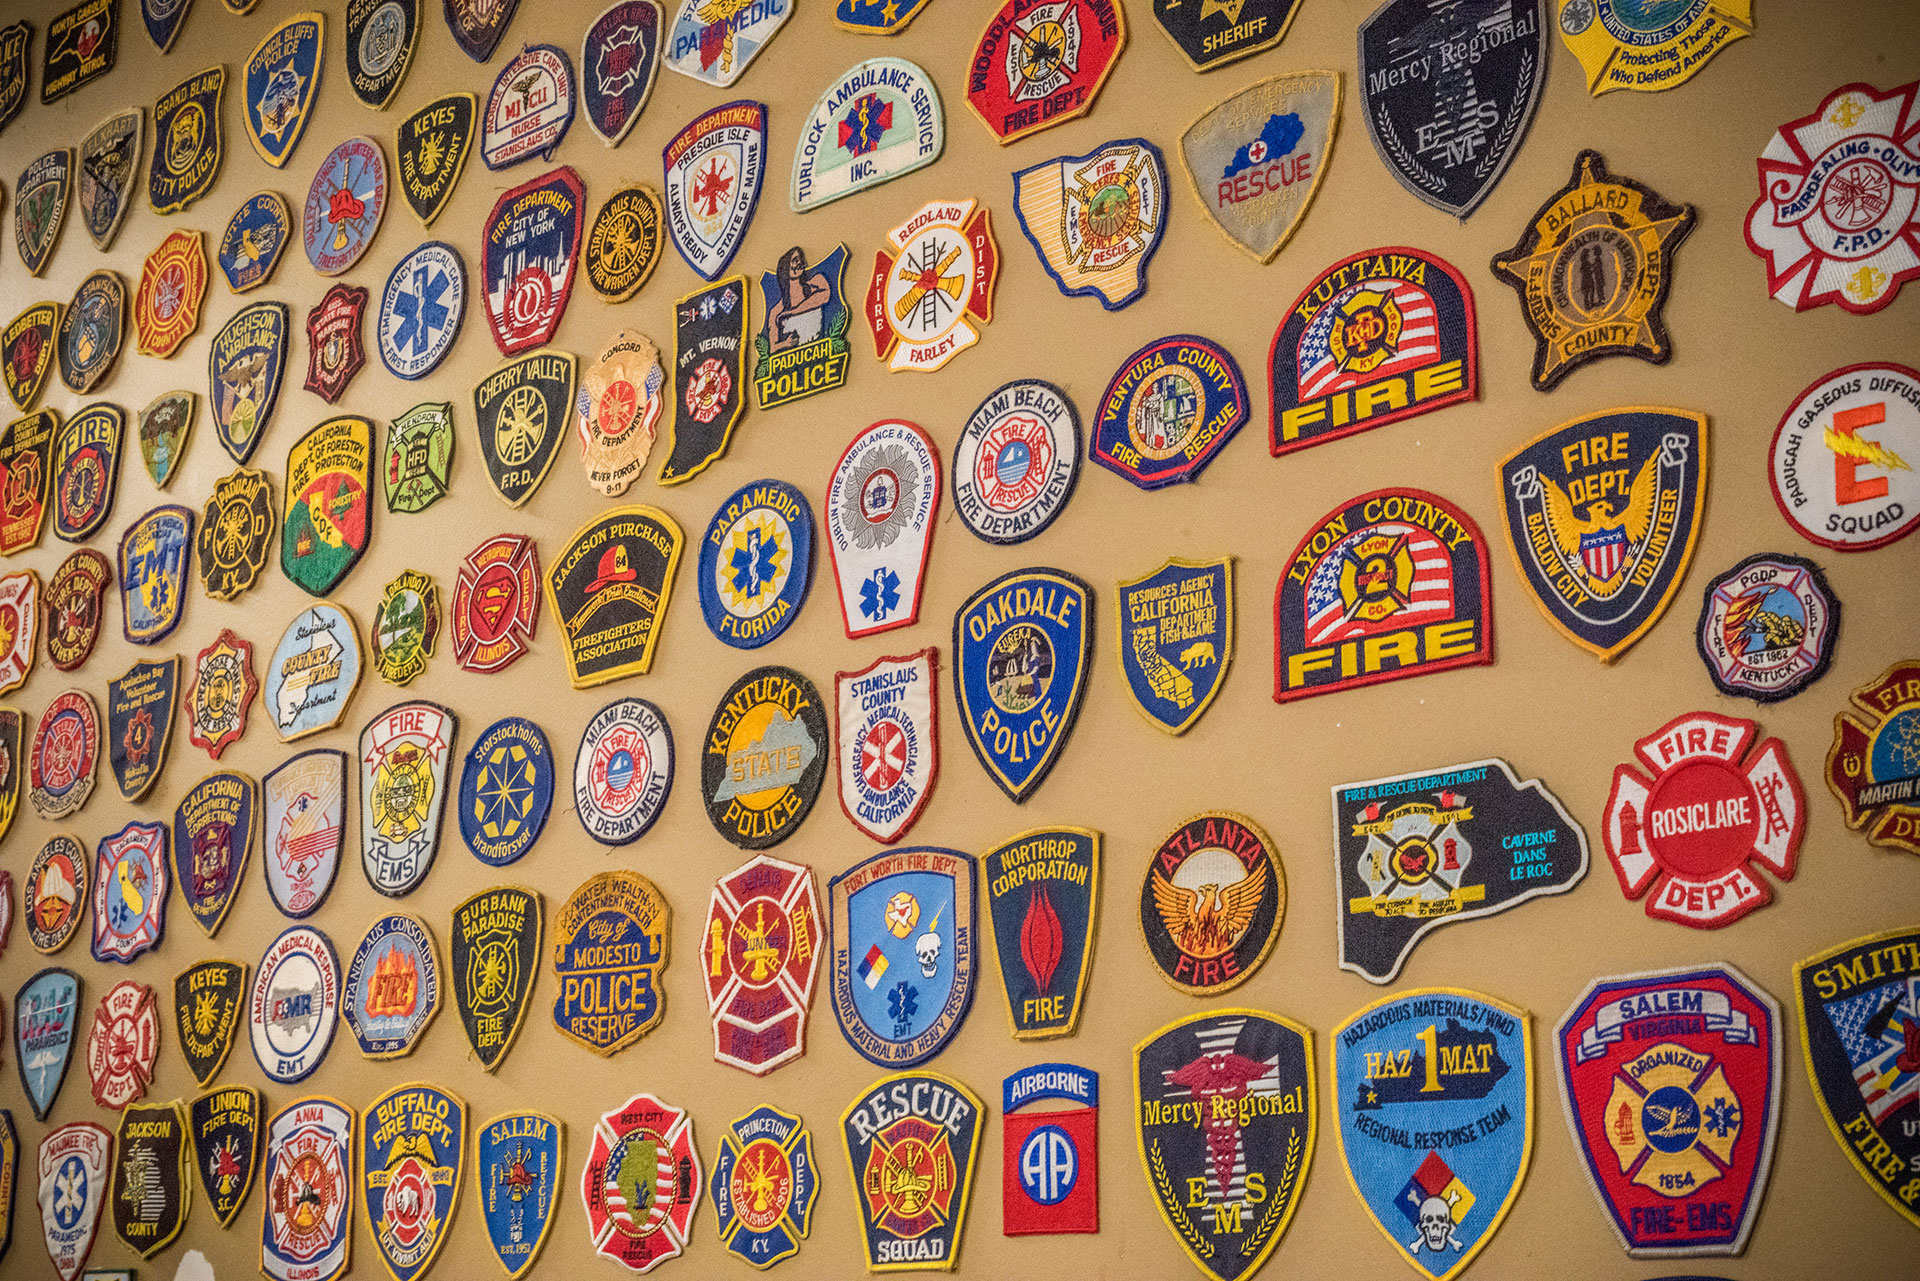 Wall of patches